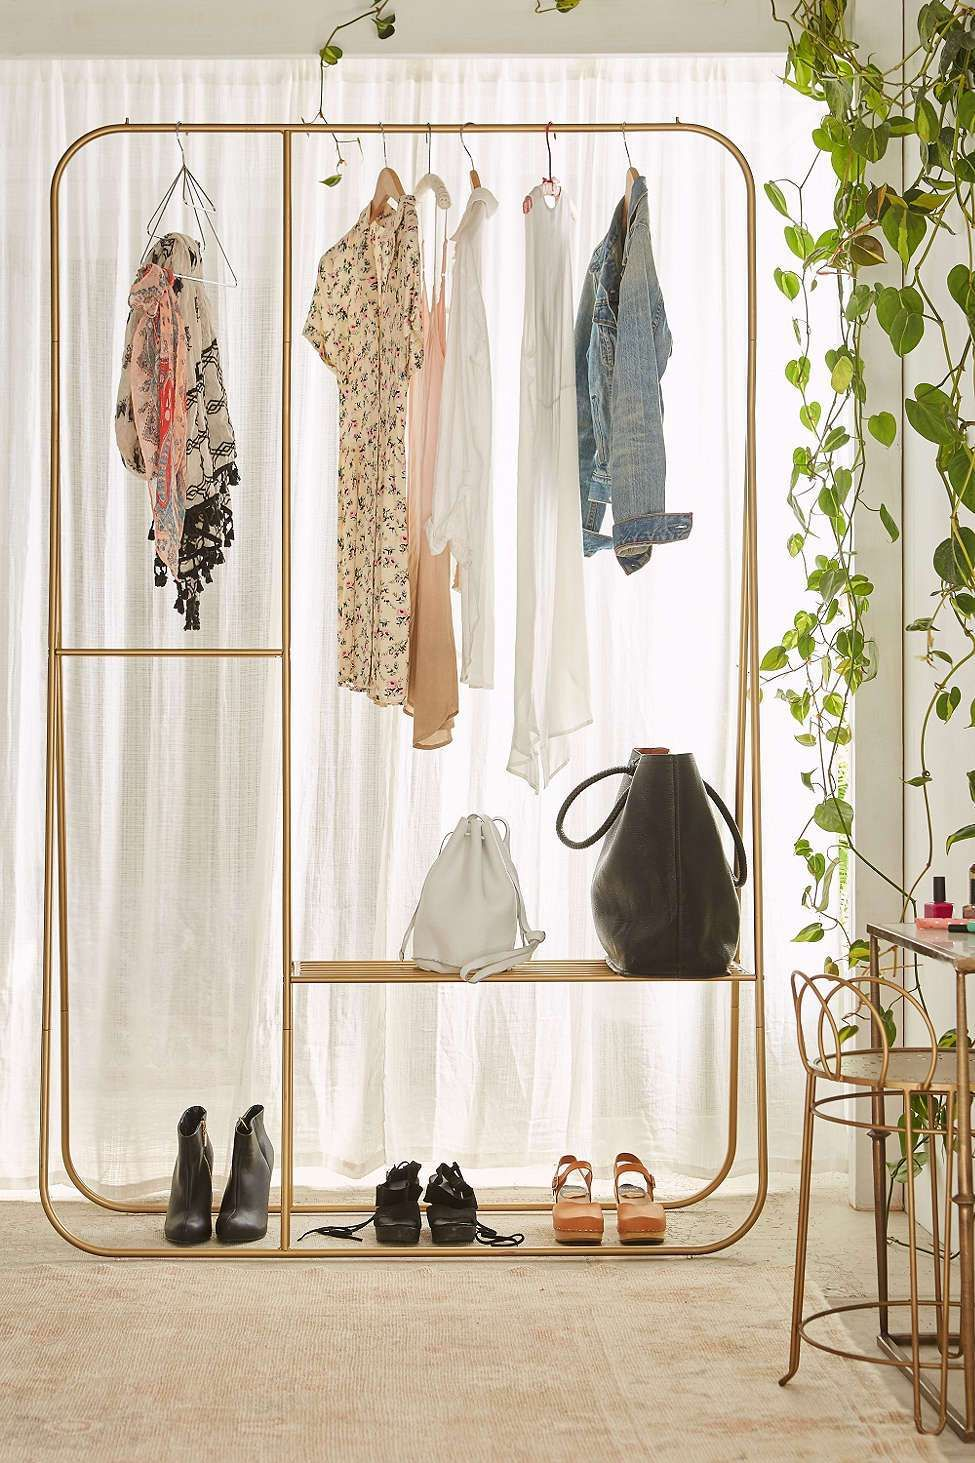 4 Awesome Styling Racks You Need To Have The Garment Rack